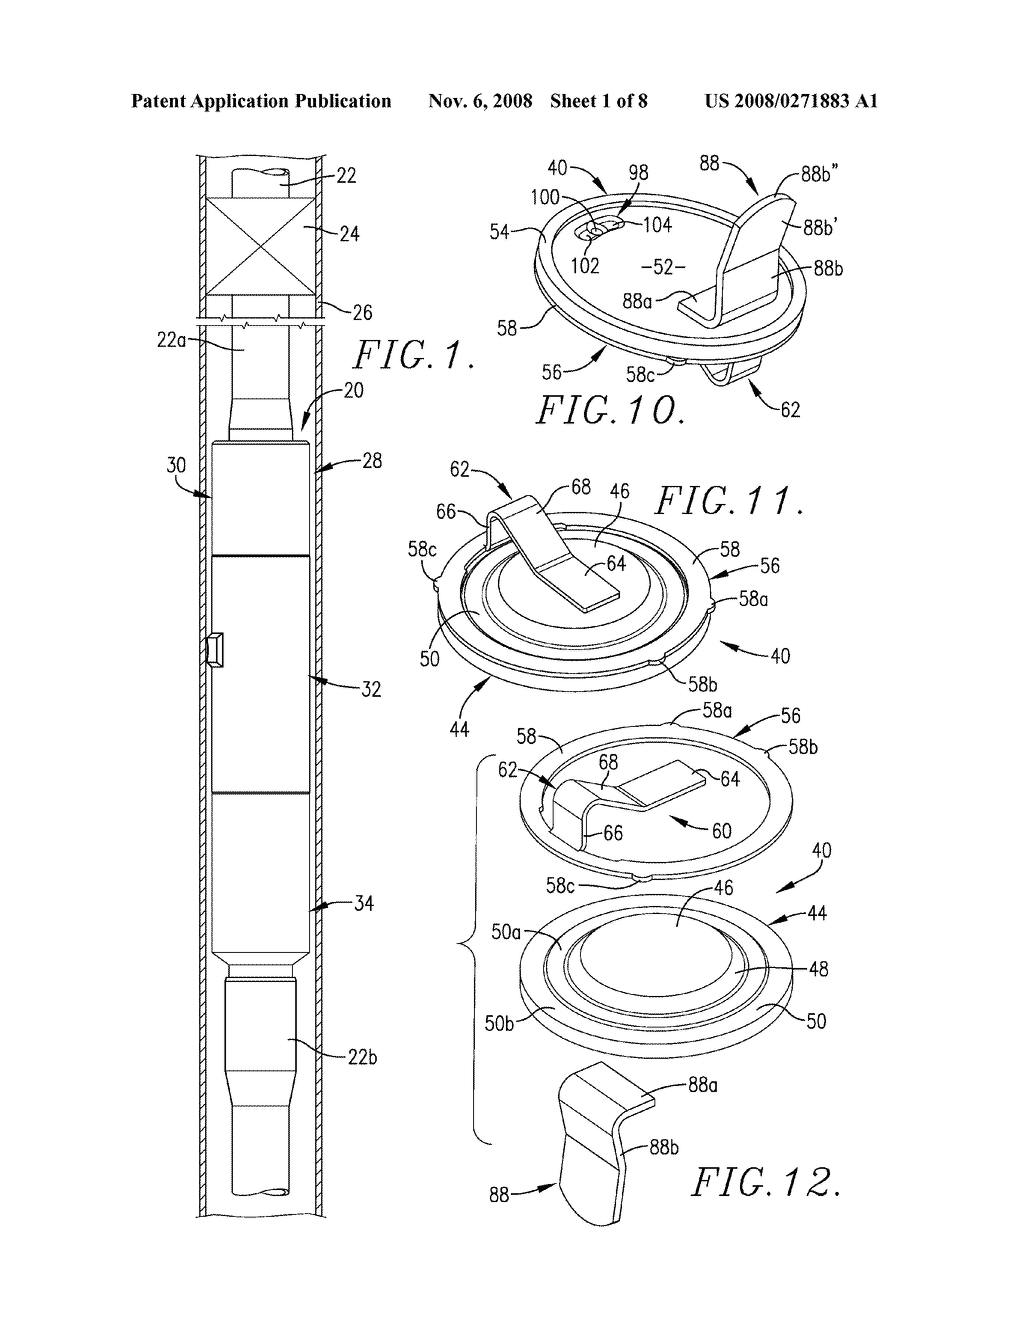 OIL WELL COMPLETION TOOL HAVING SEVERABLE TUBING STRING